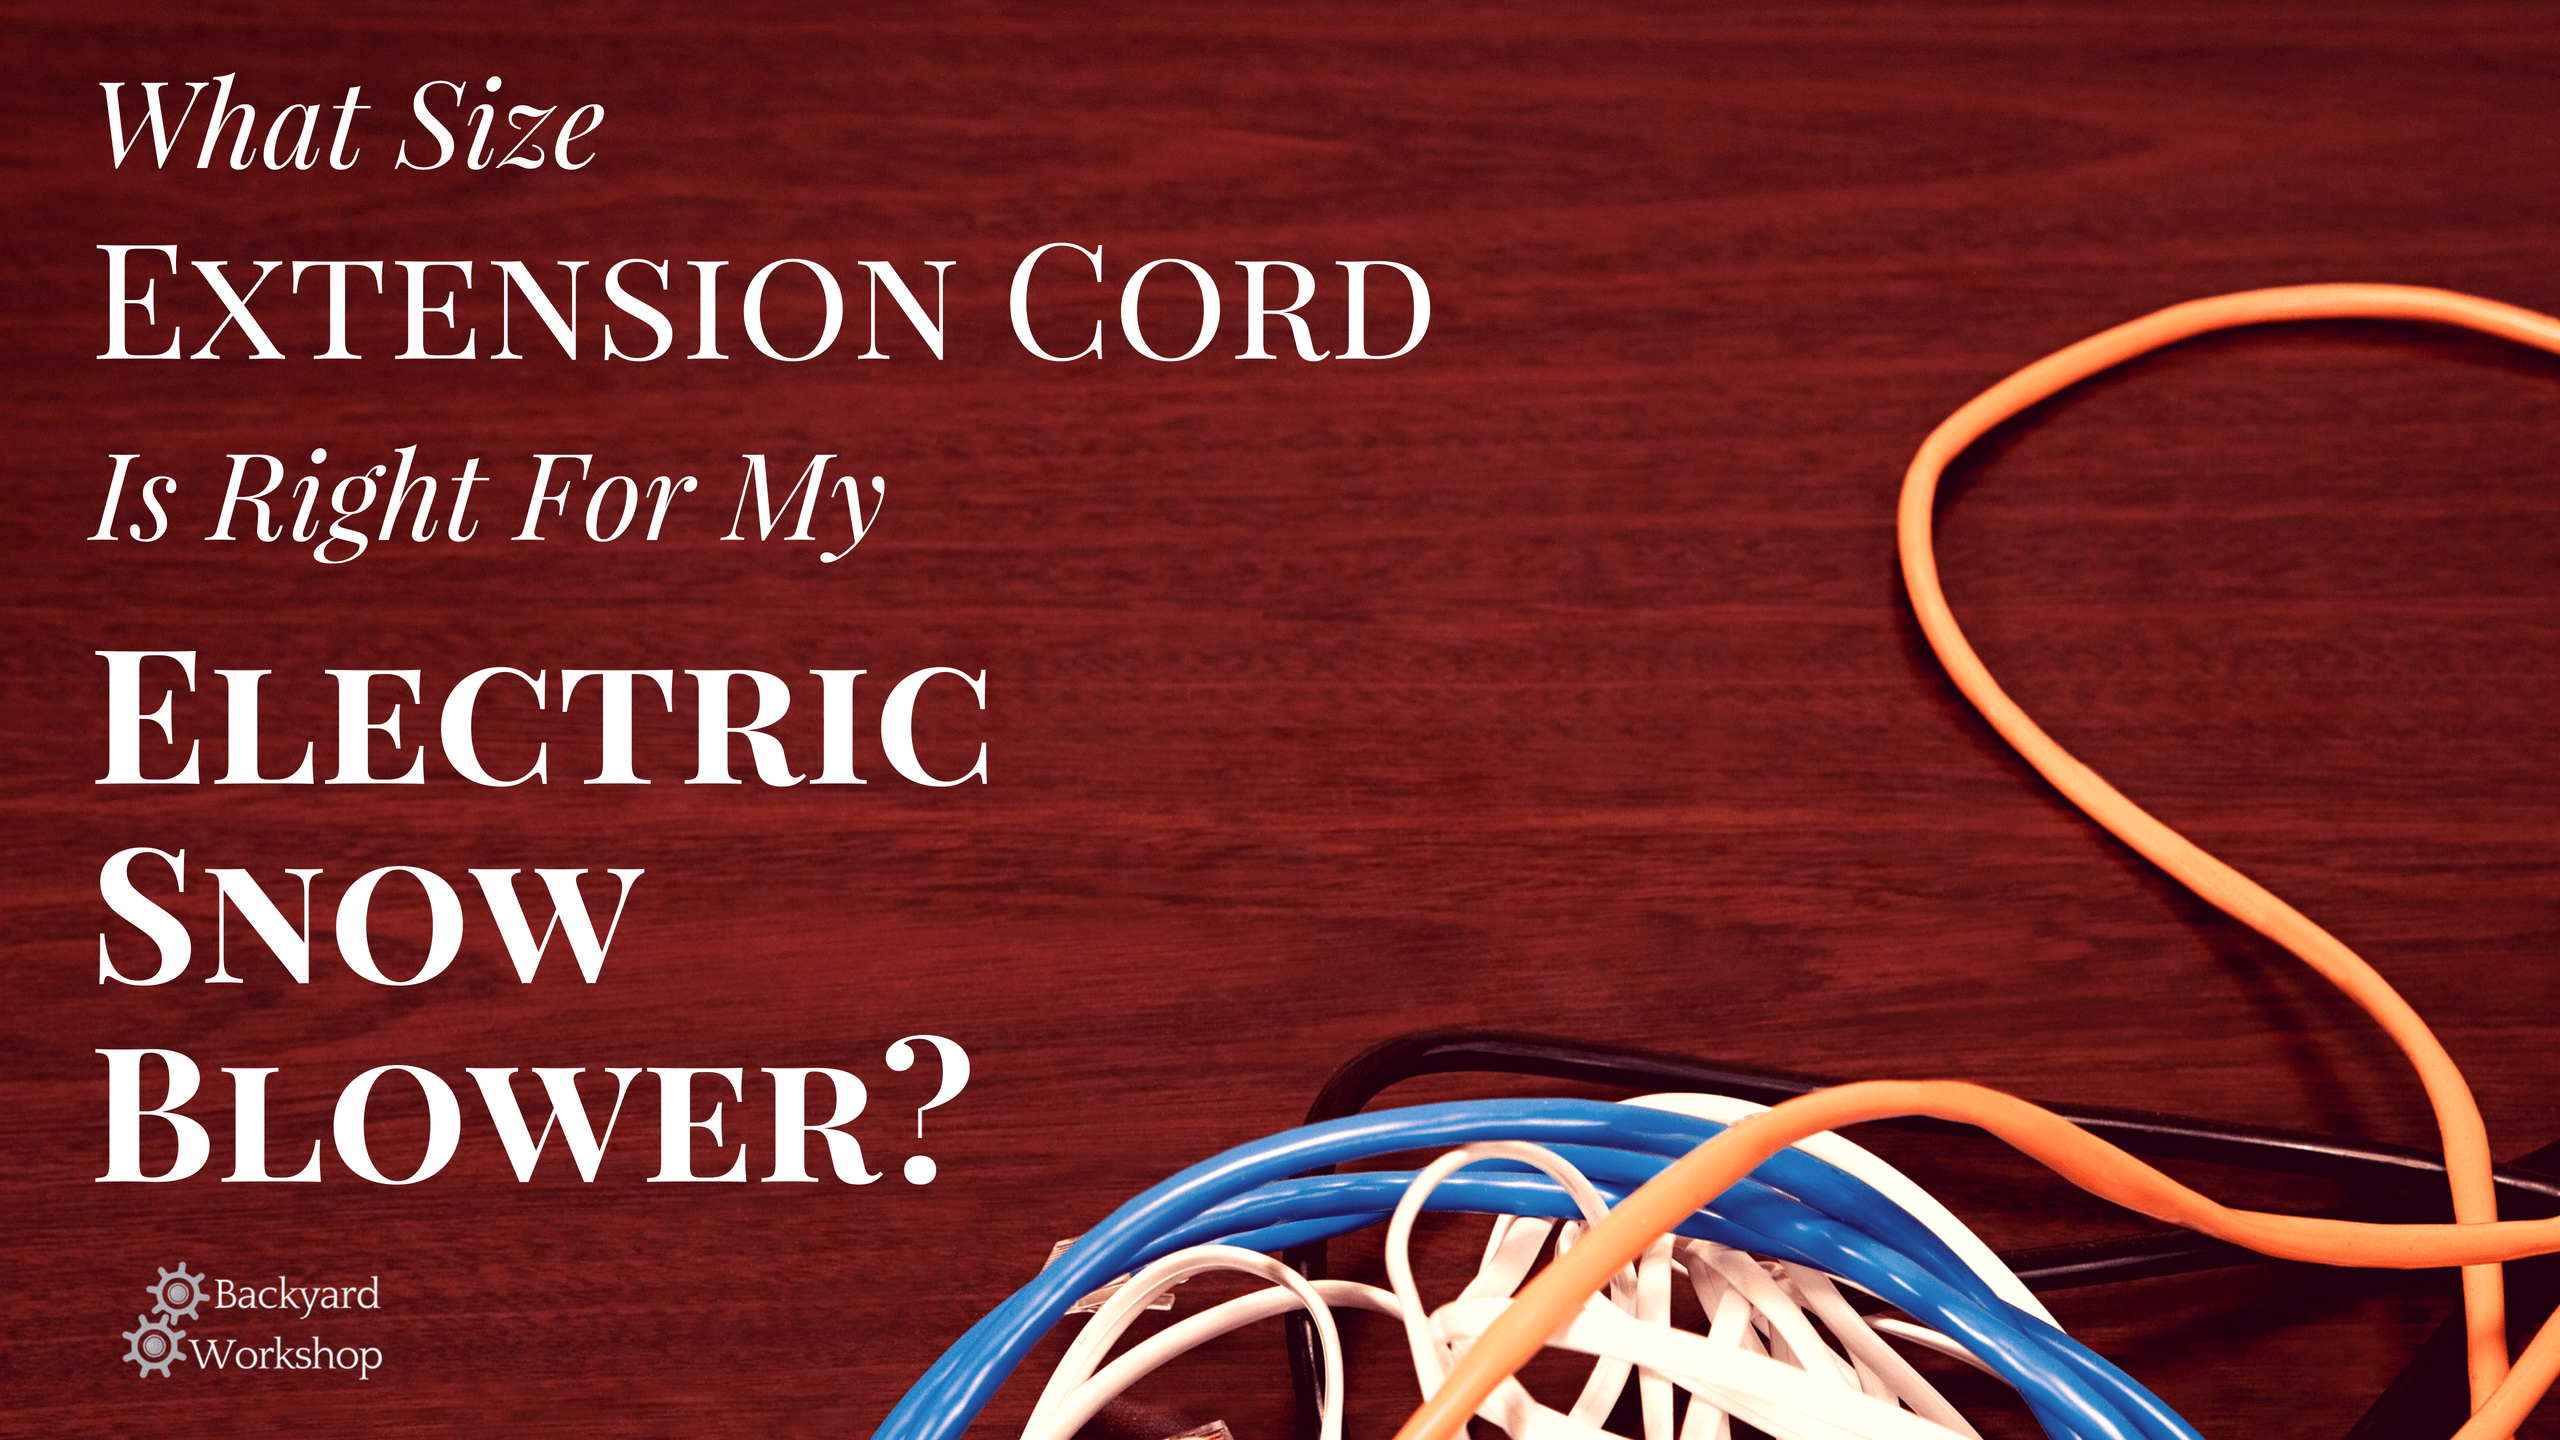 What Size Extension Cord Will Work With My Electric Snowblower